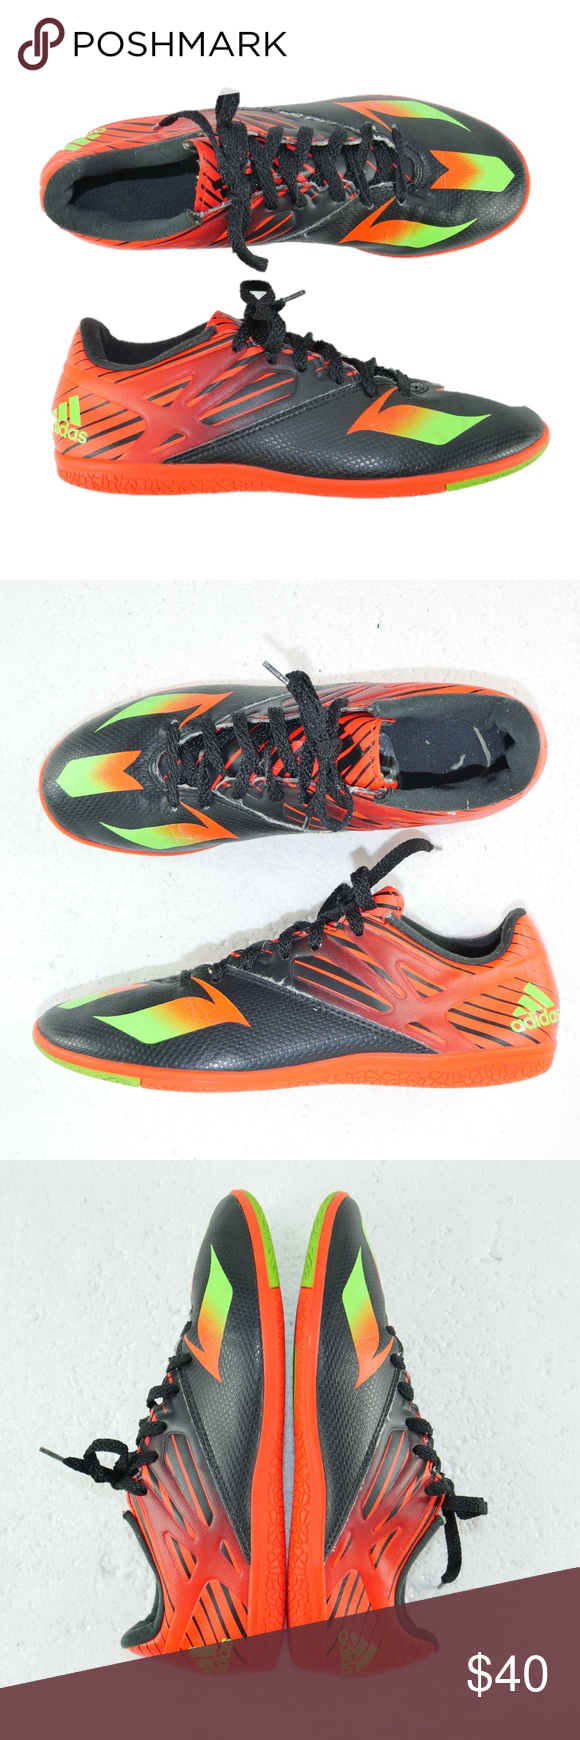 info for f83b6 6c623 Adidas Messi 15.3 Indoor Soccer Shoes Mens Sz 7 Adidas Messi 15.3 Indoor  Soccer Shoes Mens